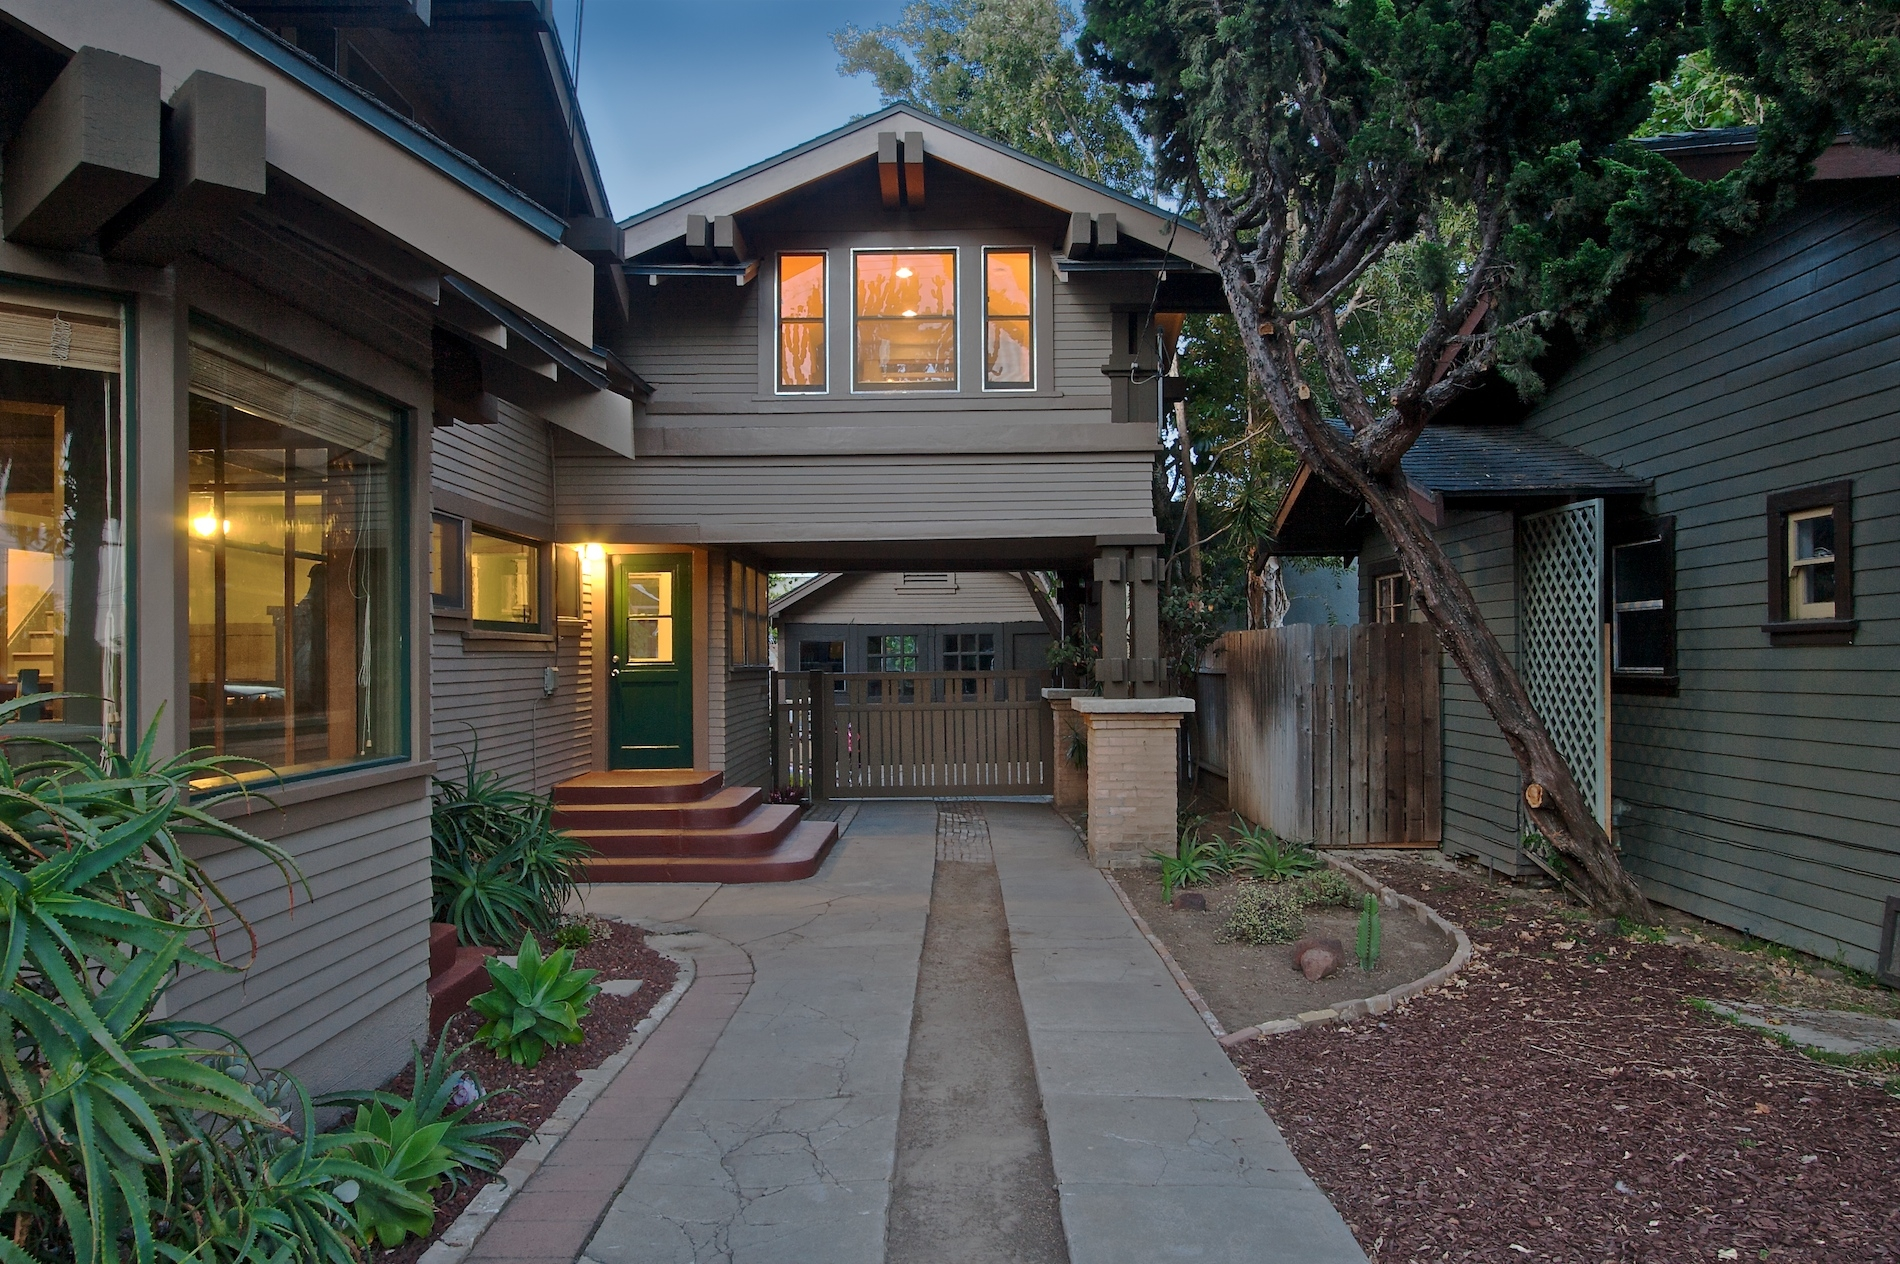 California bungalow and craftsman real estate for Craftsman style architecture